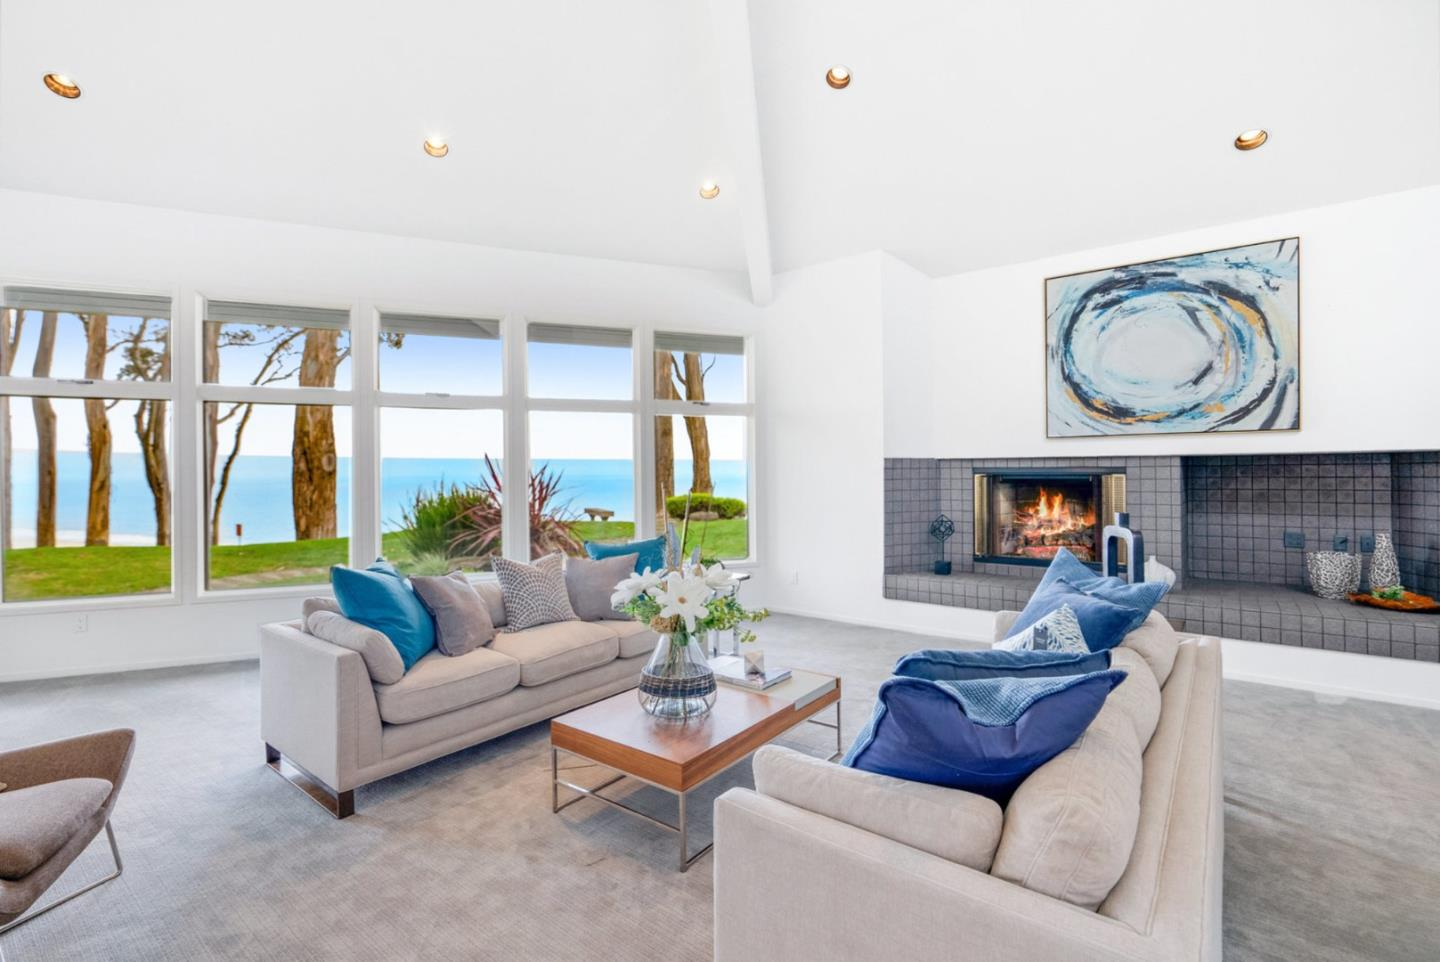 AMAZING Ocean Views. This timeless contemporary home was designed by George Foy & Associates to complement the surrounding environment.  Extensive use of windows and high ceilings provide sweeping Monterey Bay Coastline Views of ocean and sand. This home was built on one of Seascape's prime lots on a prominent point allowing unobstructed views. The 1st floor has Lrg dramatic LR w/fireplace & a wall of windows overlooking the Bay, dining room, kitchen with large walk-in pantry, family room, and 2 en suite guest rooms.  All rooms have spectacular Ocean views. The office/fourth bedroom has a small blue water view.  The first floor also includes a laundry room and attached three car garage.The entire  second floor encompasses the Master Suite with gas fireplace, steam shower, tub, his and hers walk-in closets, dressing room and a separate sitting room, with ocean/beach views from every room in Master. www.1114viamalibuaptos.com